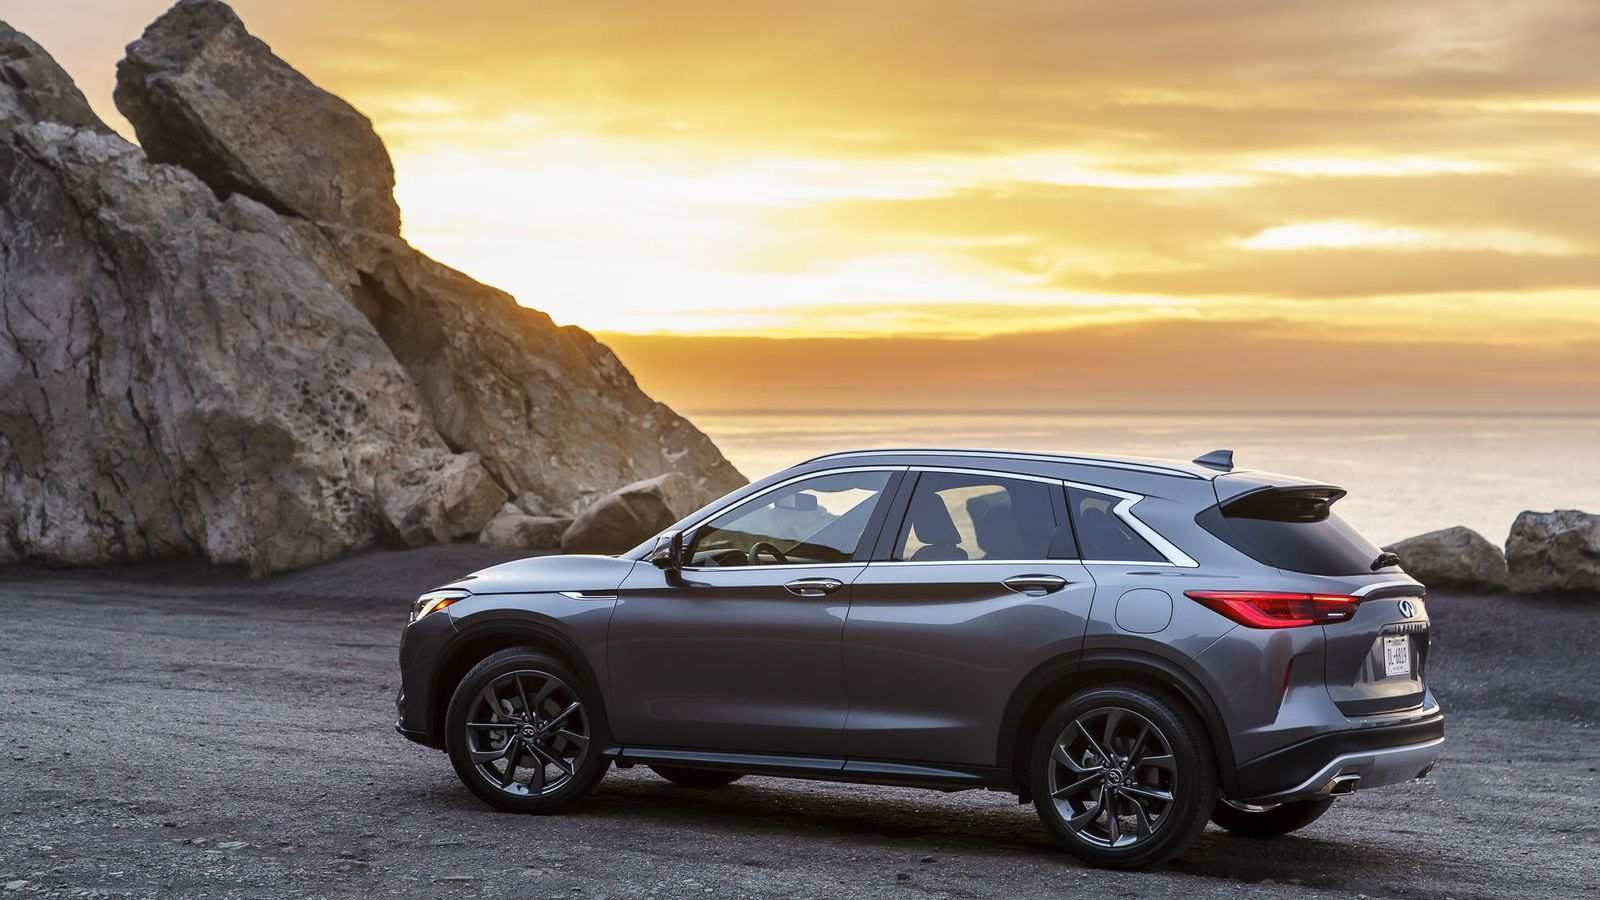 62 New 2019 Infiniti Qx50 Horsepower Price